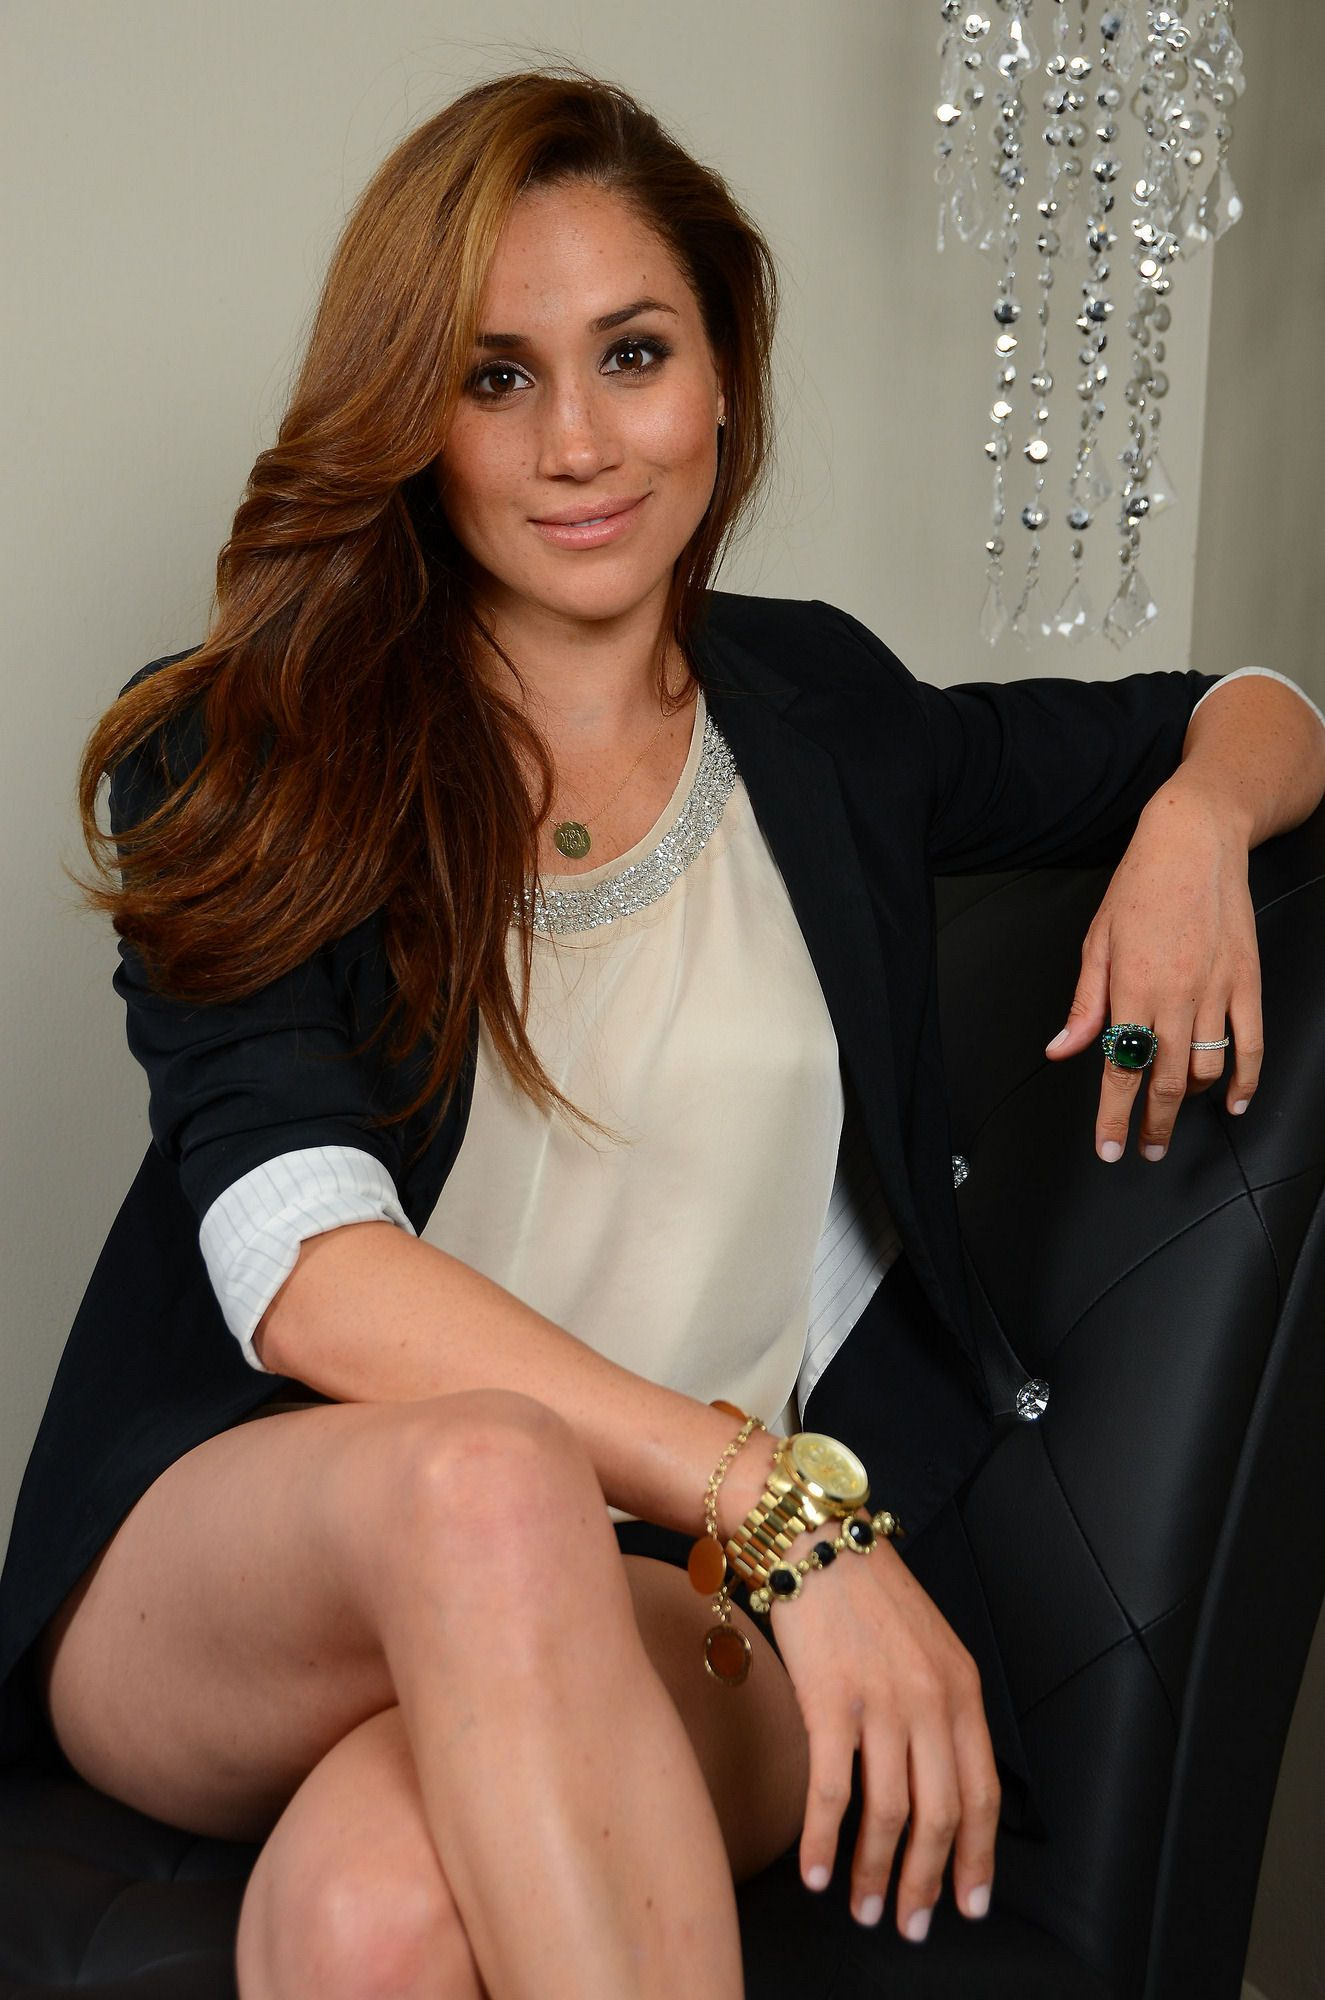 Meghan markle biography - Meghan Markle Biography And Gallery Www Suitstv Net